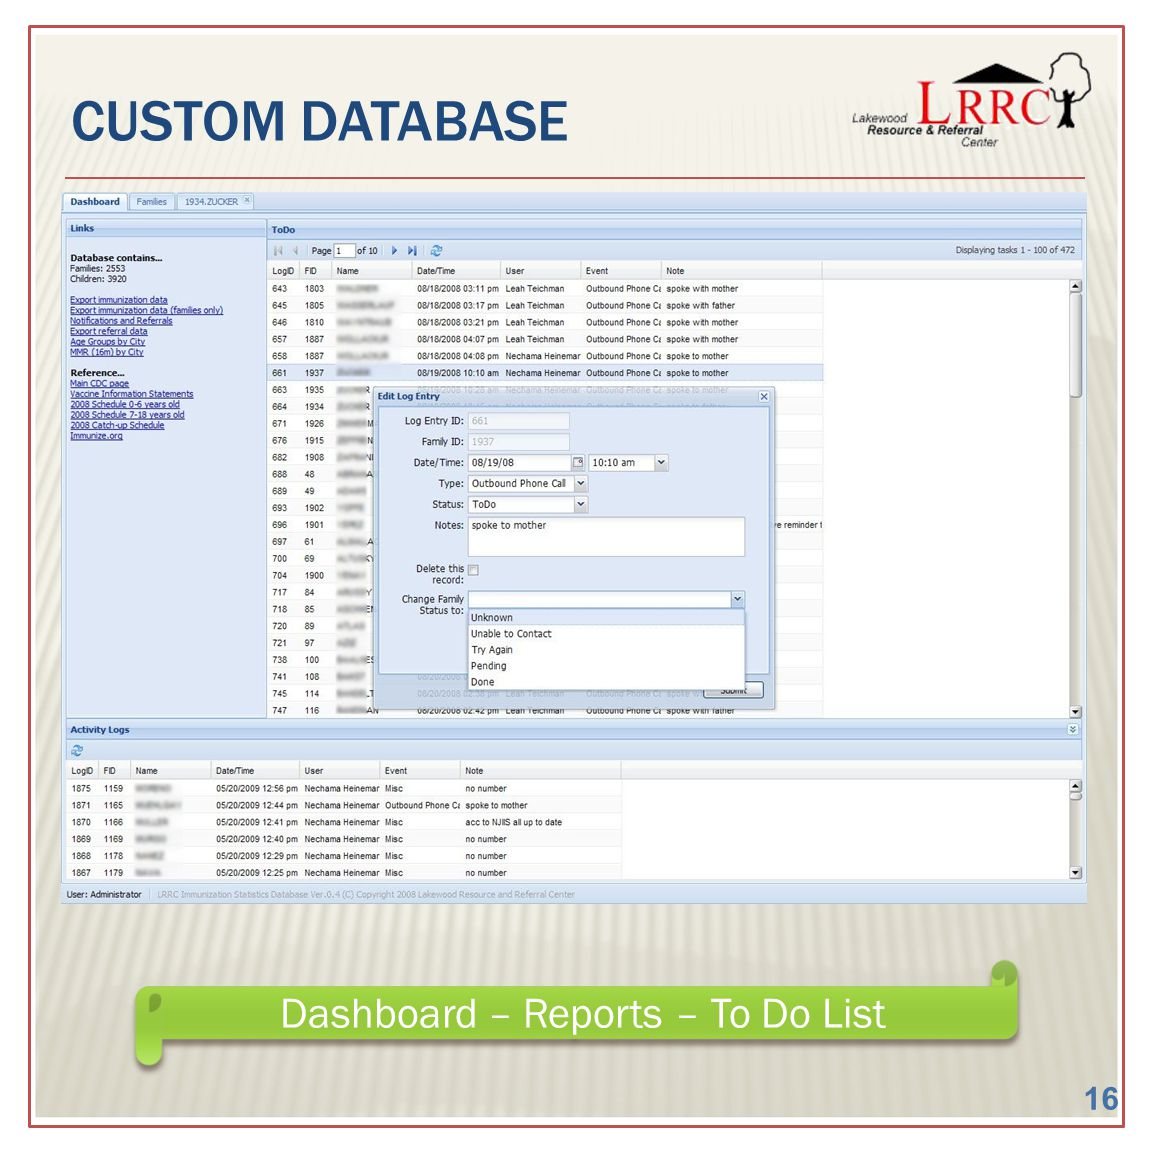 CUSTOM DATABASE Dashboard – Reports – To Do List 16